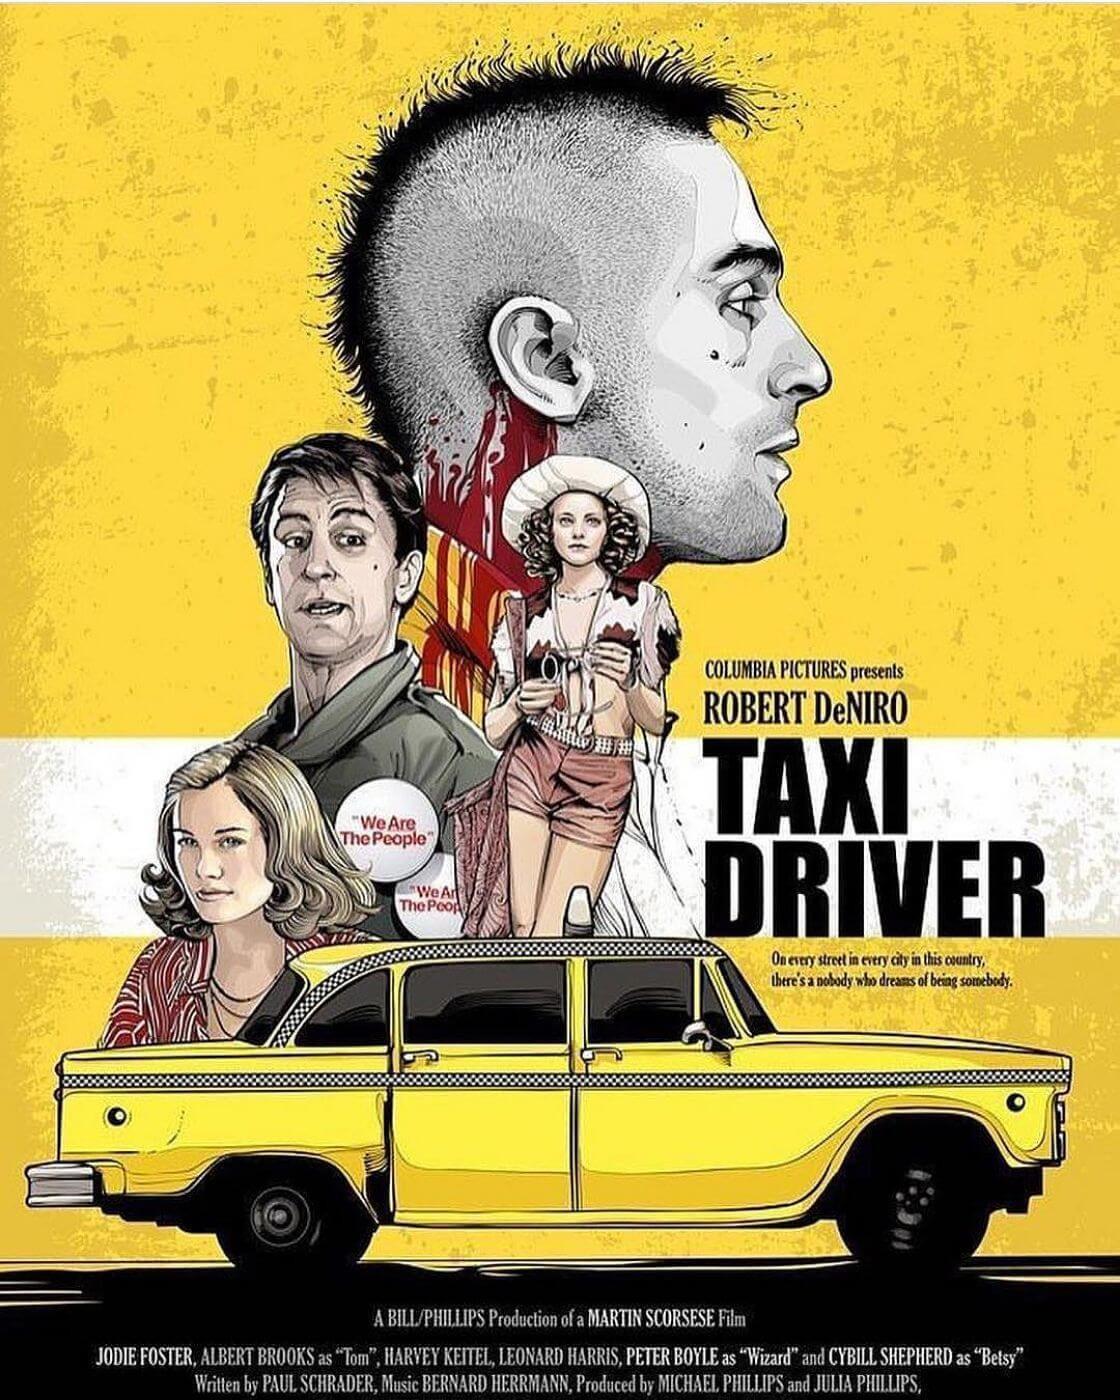 Taxi Driver Robert De Niro Hollywood Movie Poster Collection Canvas Prints By Tim Buy Posters Frames Canvas Digital Art Prints Small Compact Medium And Large Variants